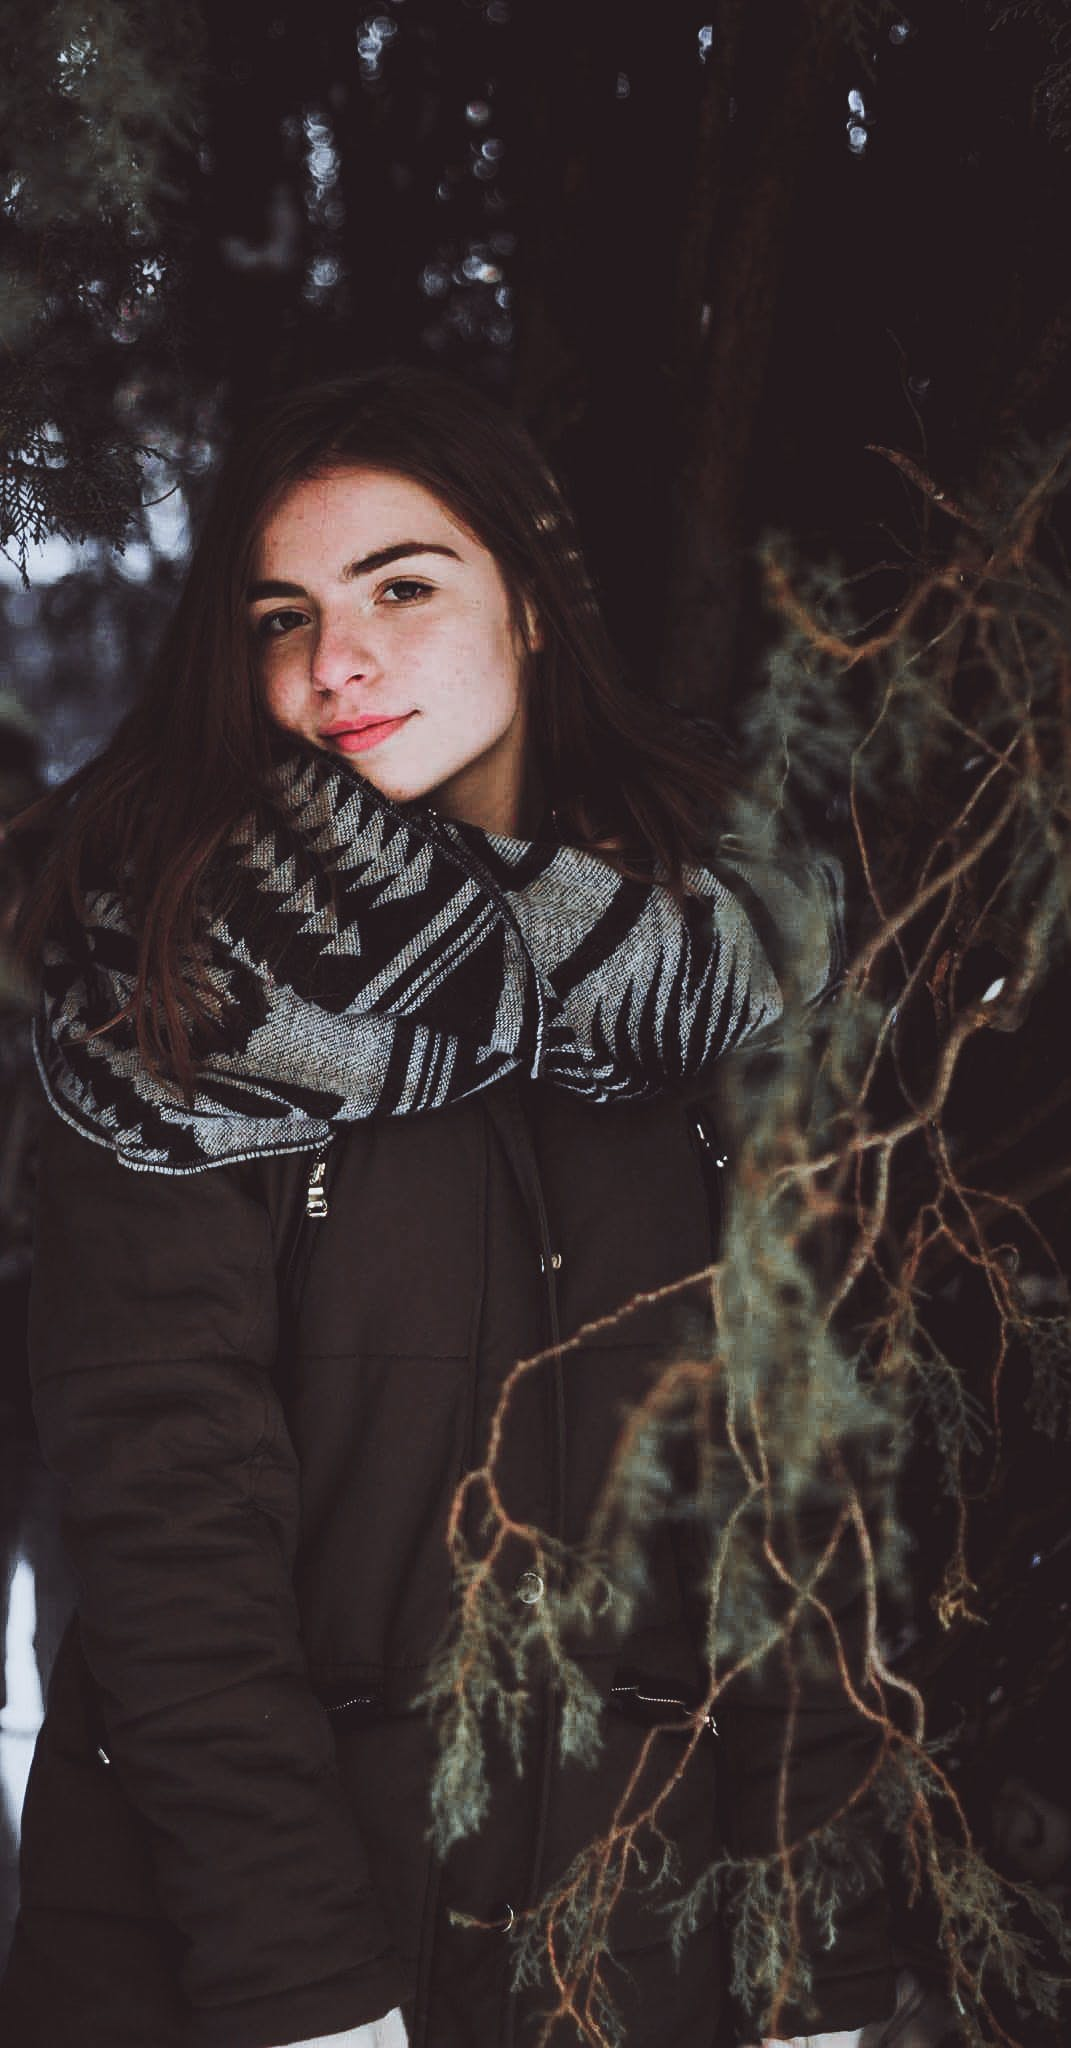 Woman Wearing Black Zip-up Jacket Posing Under Tree